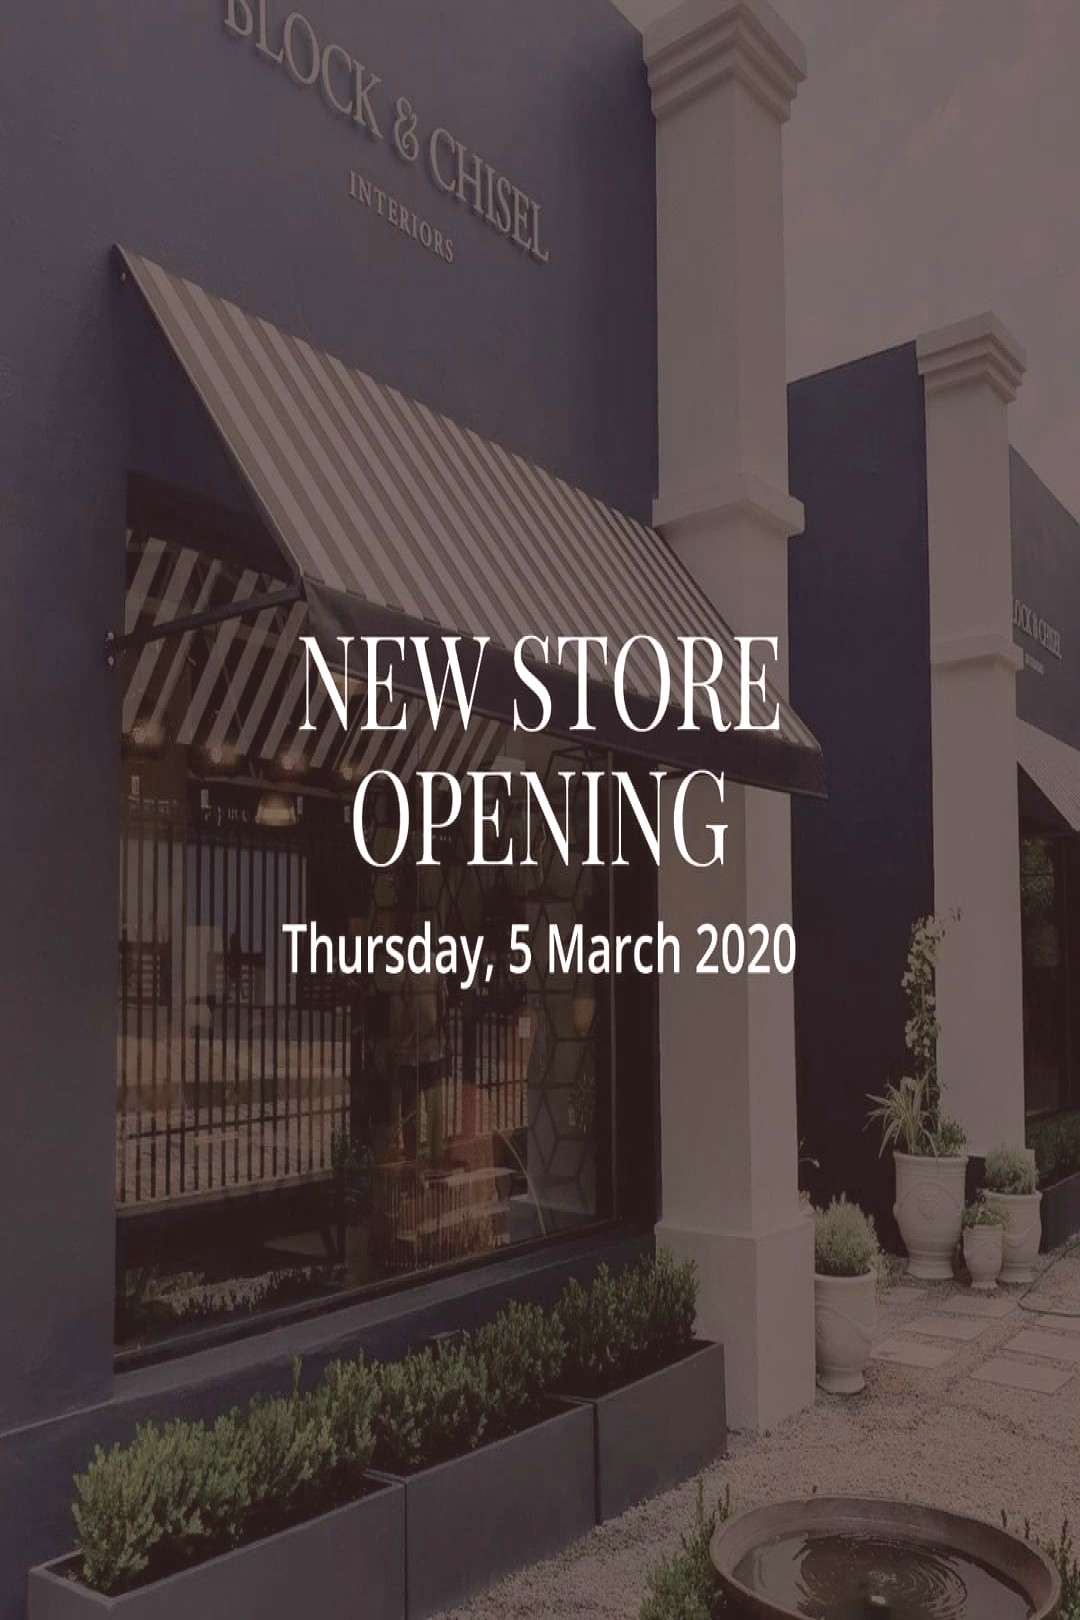 OPENING SOON Just one more day until our brand new store at 155 J